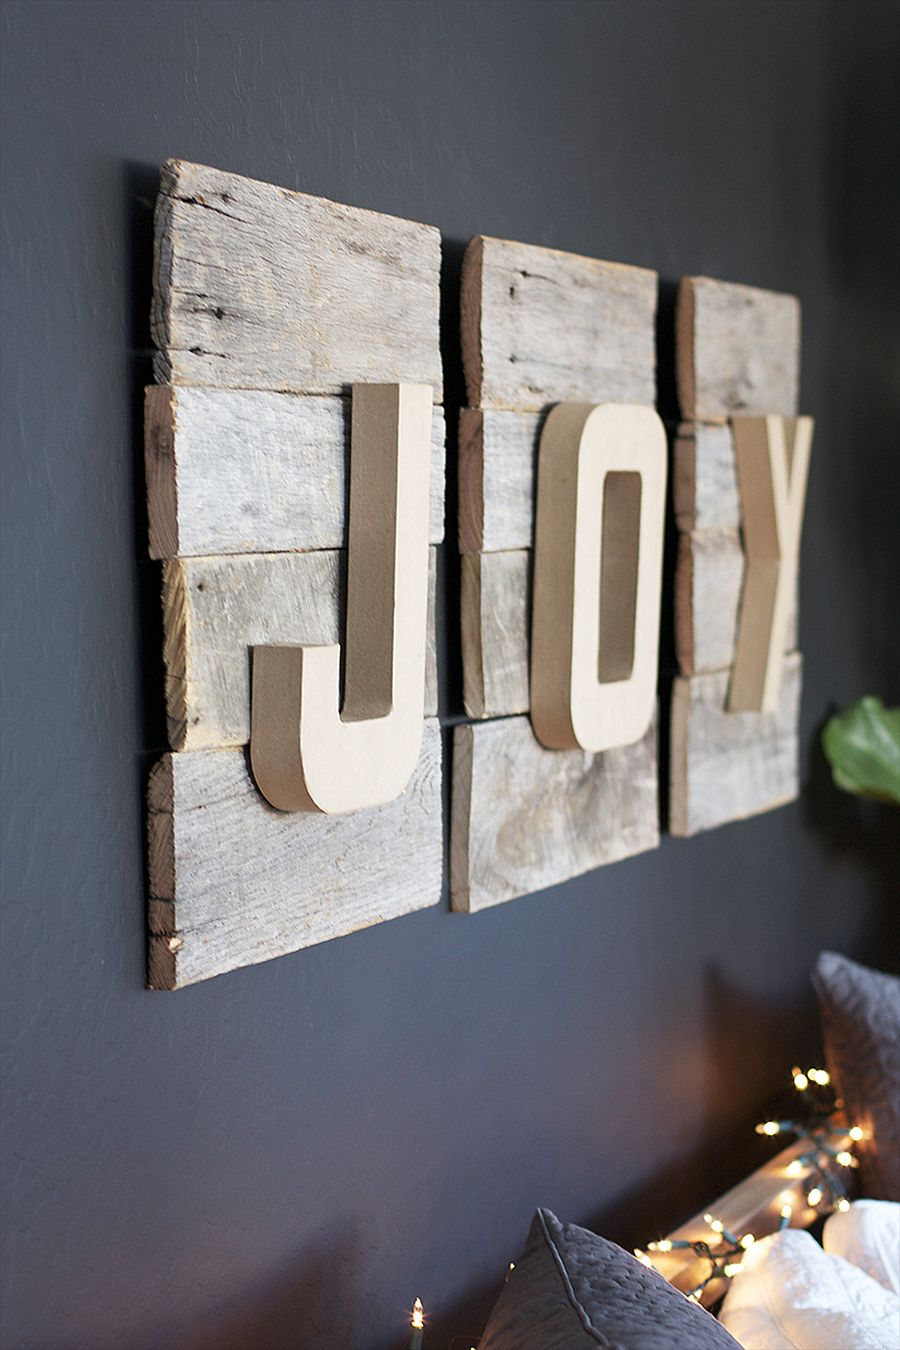 Awesome DIY Christmas sign using reclaimed wood